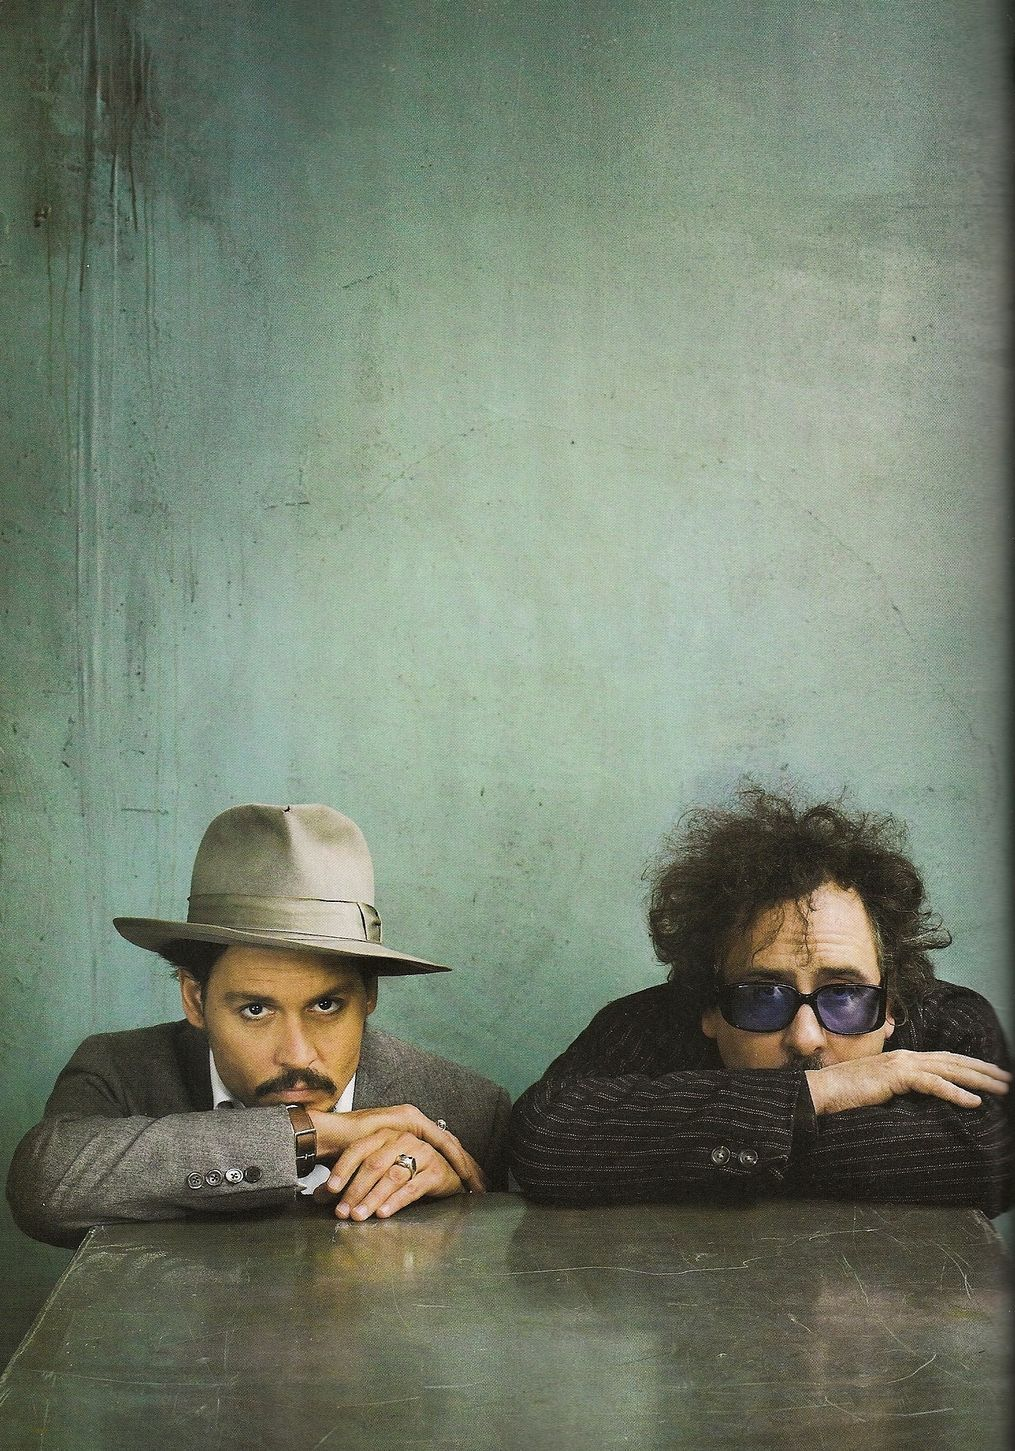 Johnny Depp e l'inseparabile amico Tim Burton la loro prima collaborazione risale al 1990 in occasione del film 'Edward mani di forbice'. cult cinema cult stories cultstories cult story cult story movie director actor regista attore storie aneddoti I personaggi, le storie, le citazioni e le immagini più cult willie wonka helena bonham carter vampire dark shadows tumblr edgar allan poe ed wood filmografia michelle pfeiffer poem analysis poster quotes rumpelstiltskin sweeney todd wife youtube